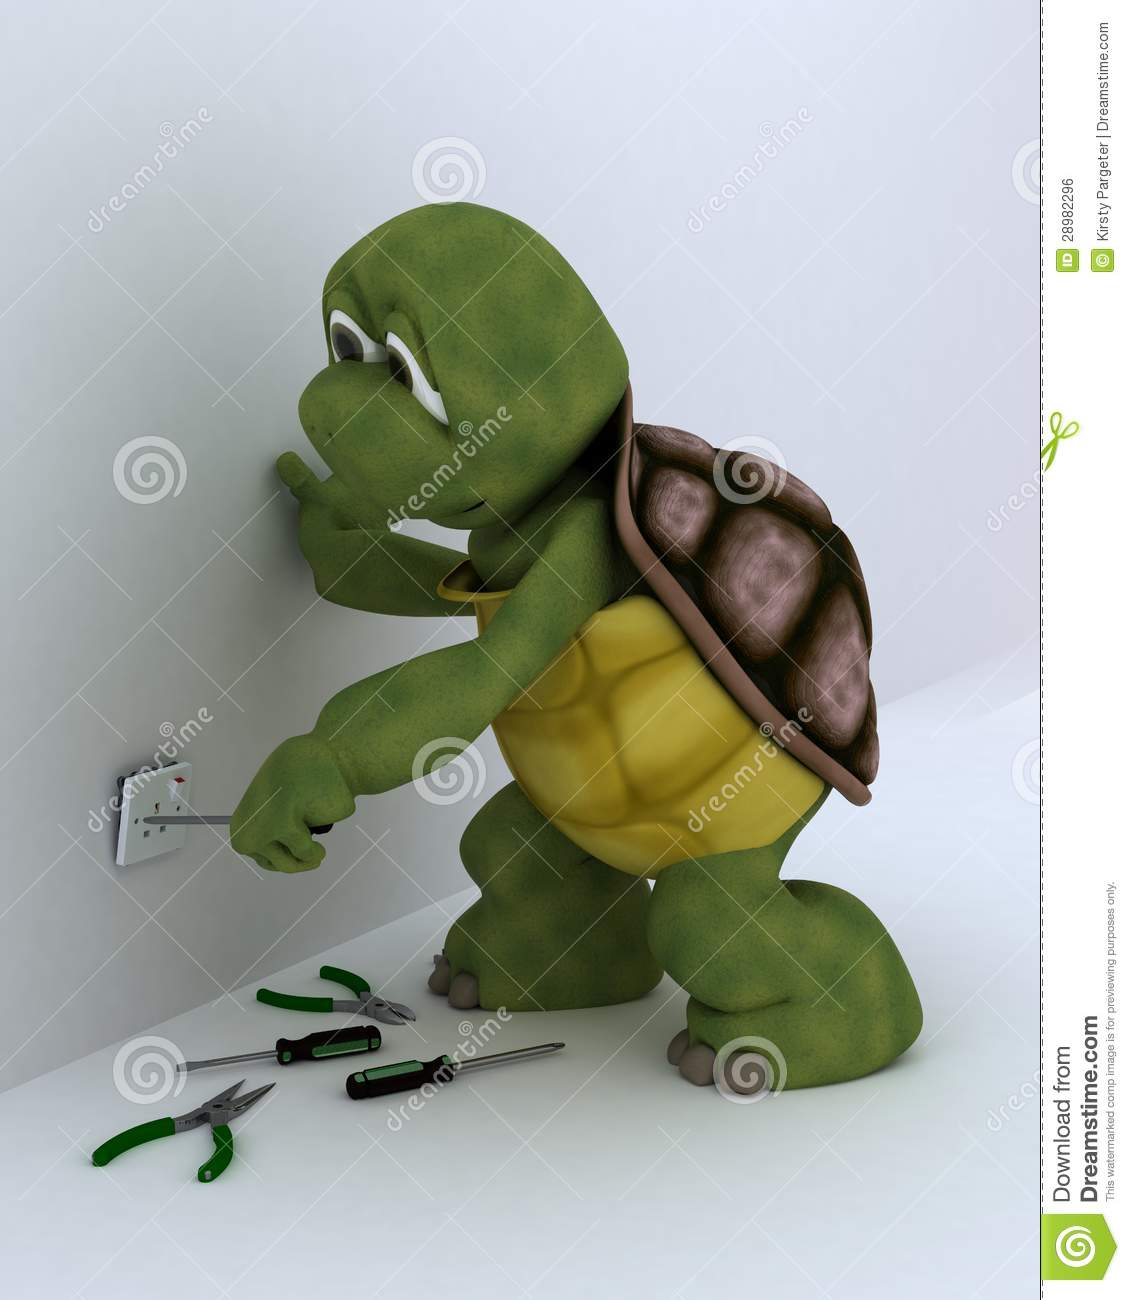 Tortoise Electrical Contractor Royalty Free Stock Image   Image